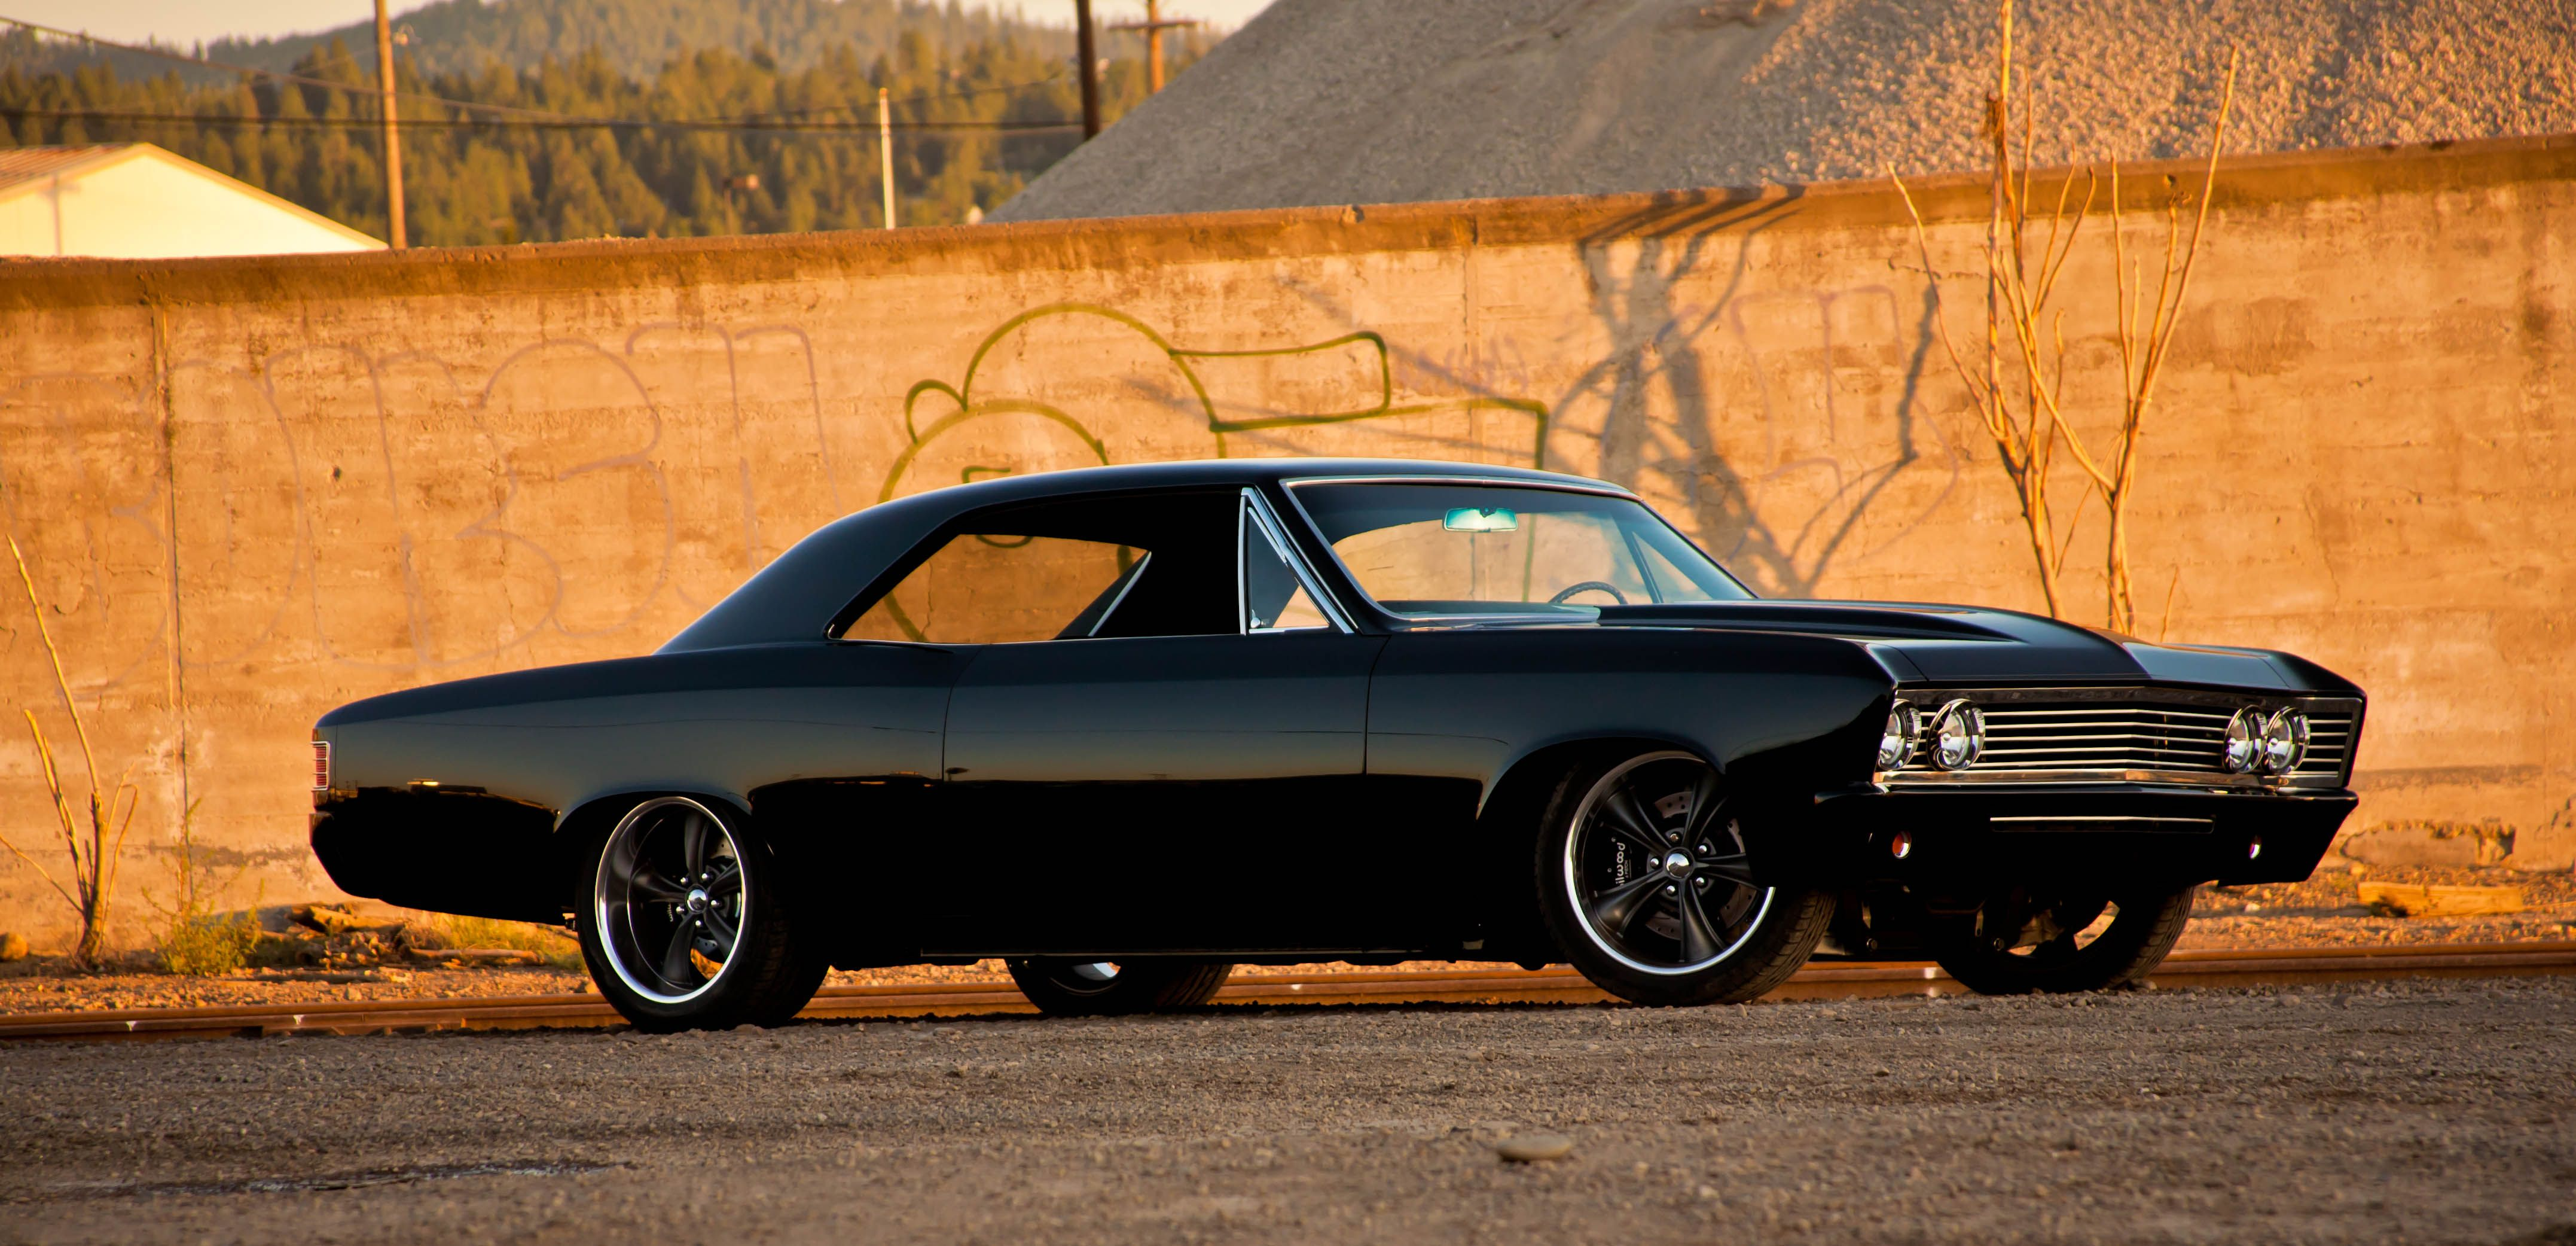 Chevelle Ss Scratch The Challanger I Want This Classic